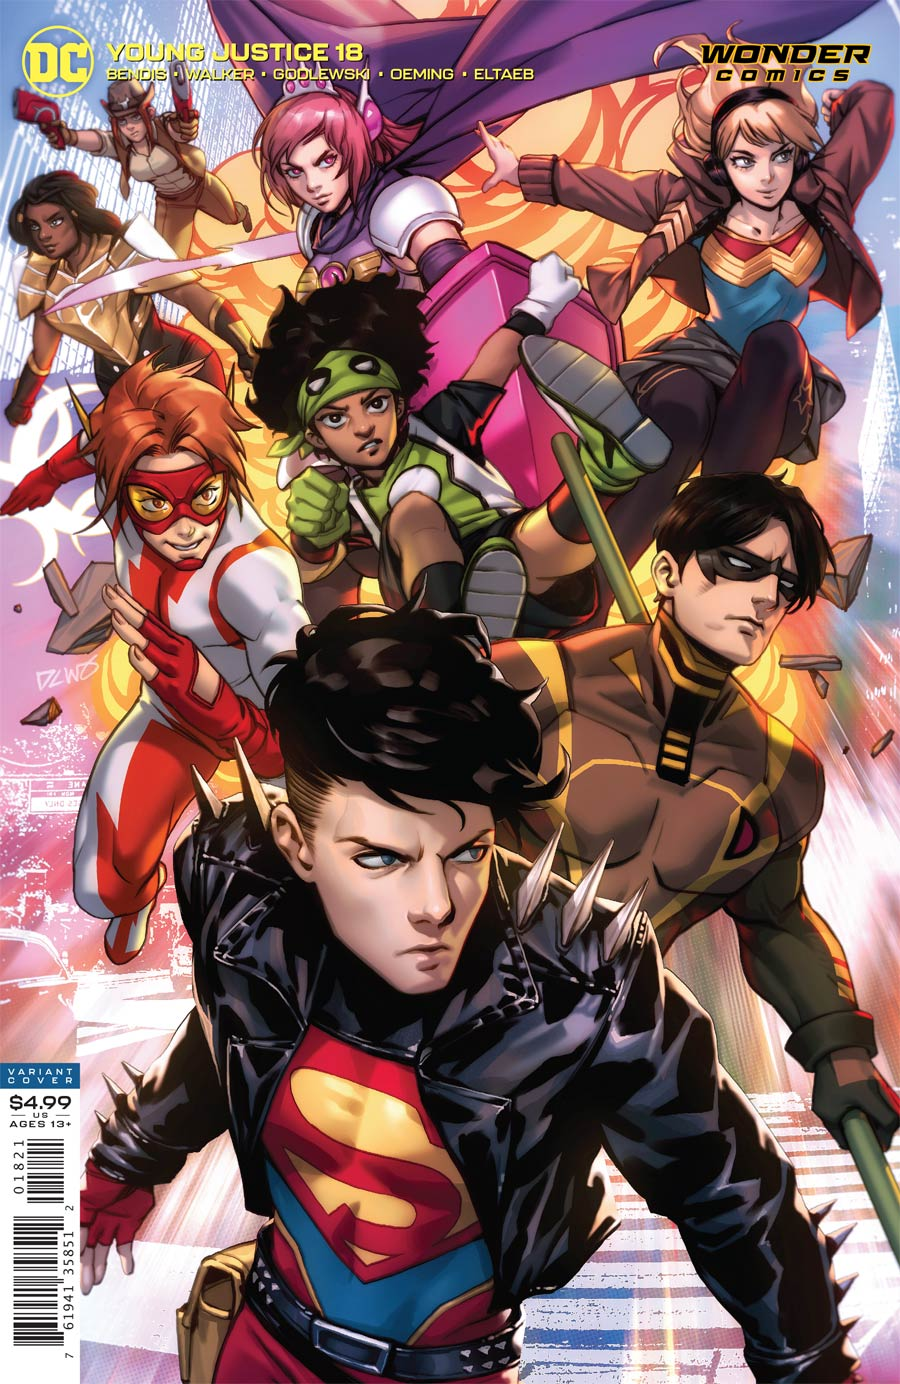 Young Justice Vol 3 #18 Cover B Variant Derrick Chew Card Stock Cover